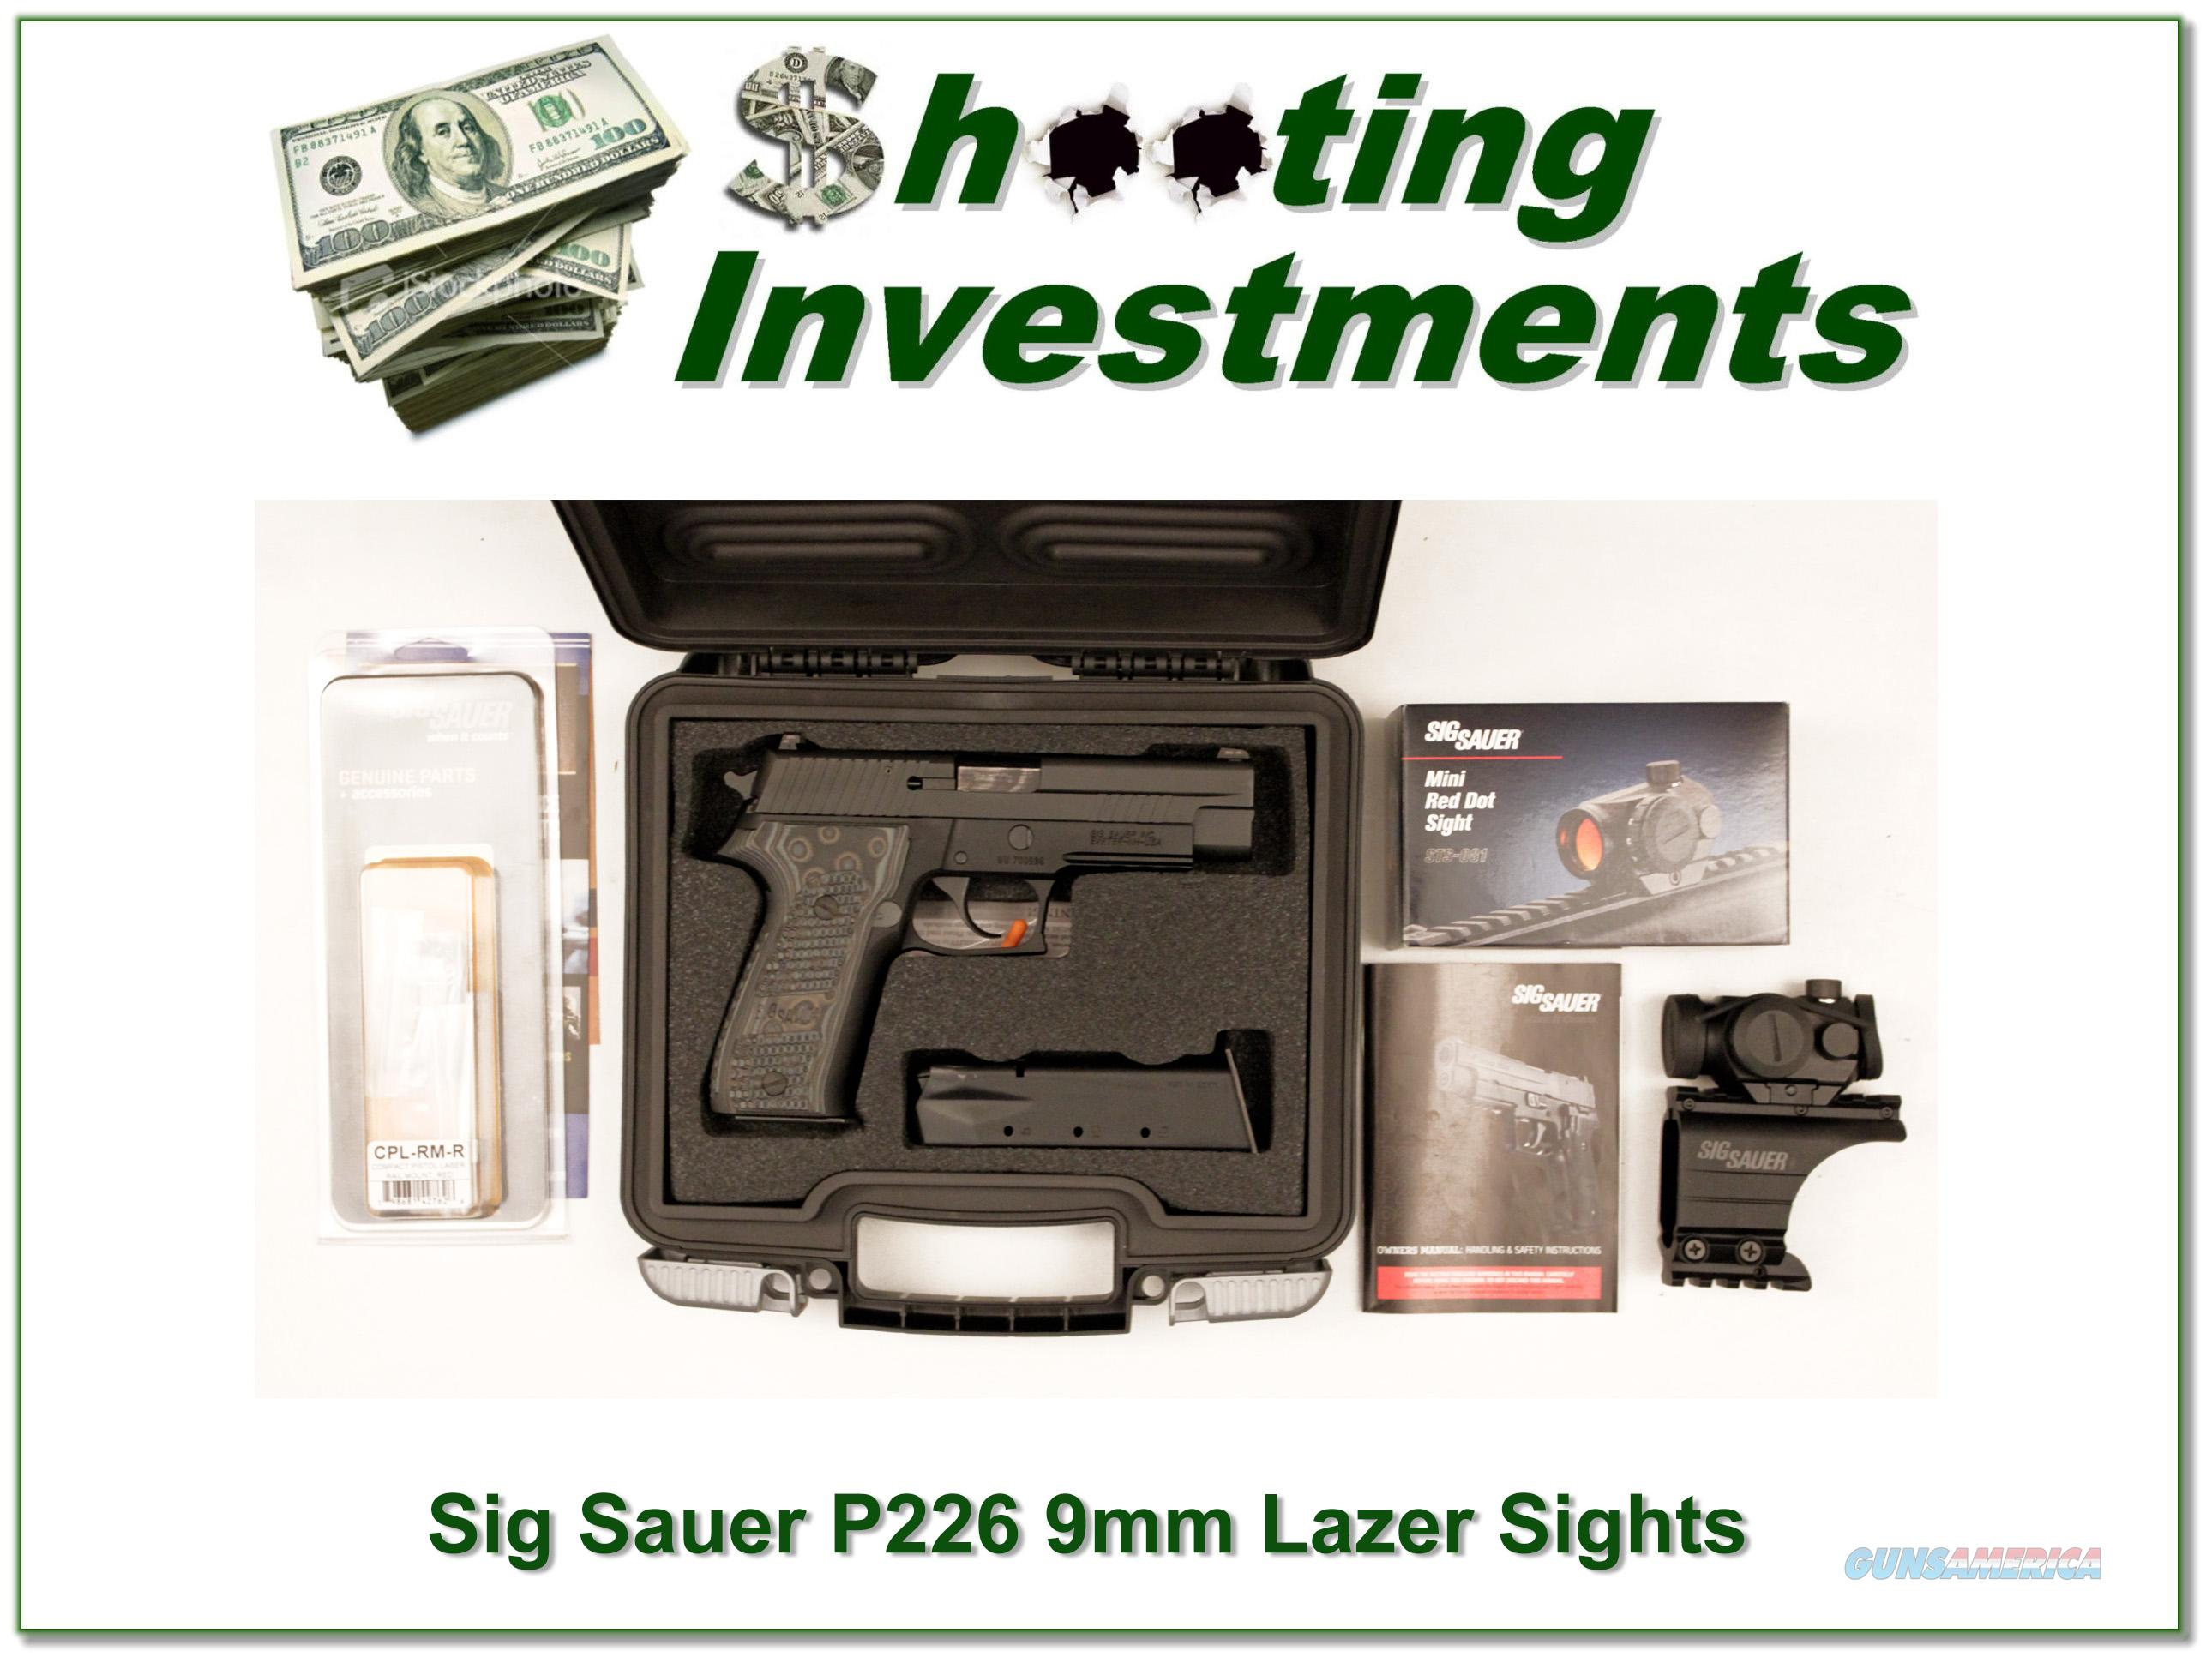 Sig Sauer P226 ANIC with factory laser sights!  Guns > Pistols > Sig - Sauer/Sigarms Pistols > P226